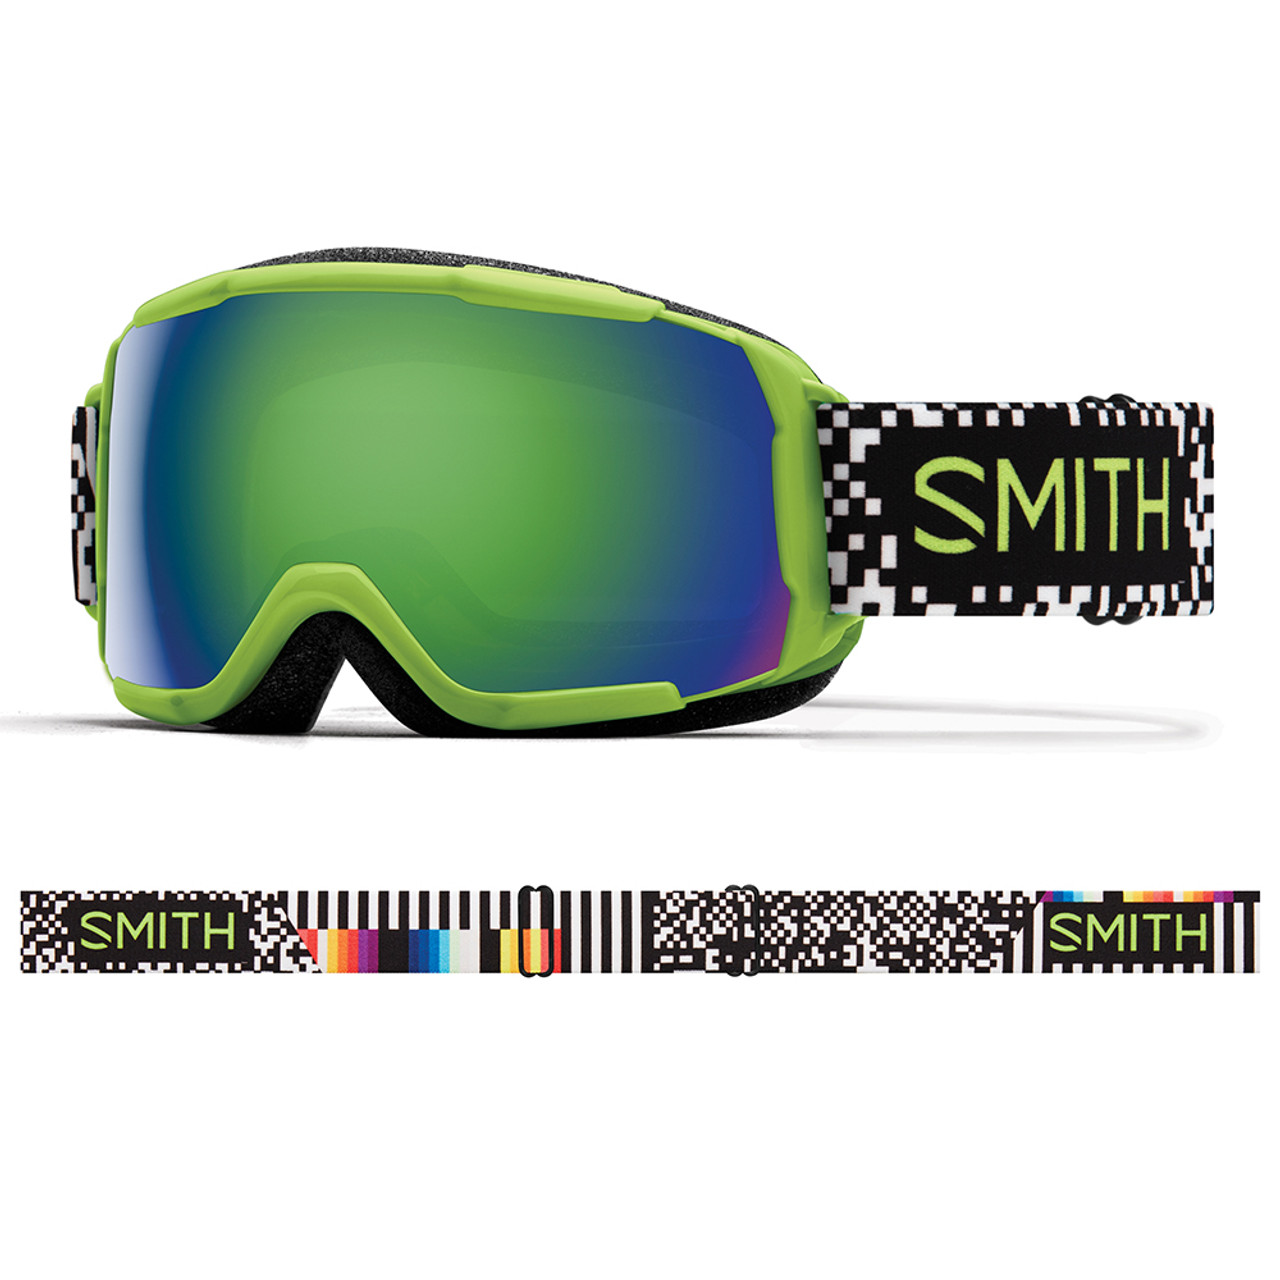 aa8a0f070de 2019 Smith Grom Flash Game Over Goggle w Sol-X Mirror Lens ...